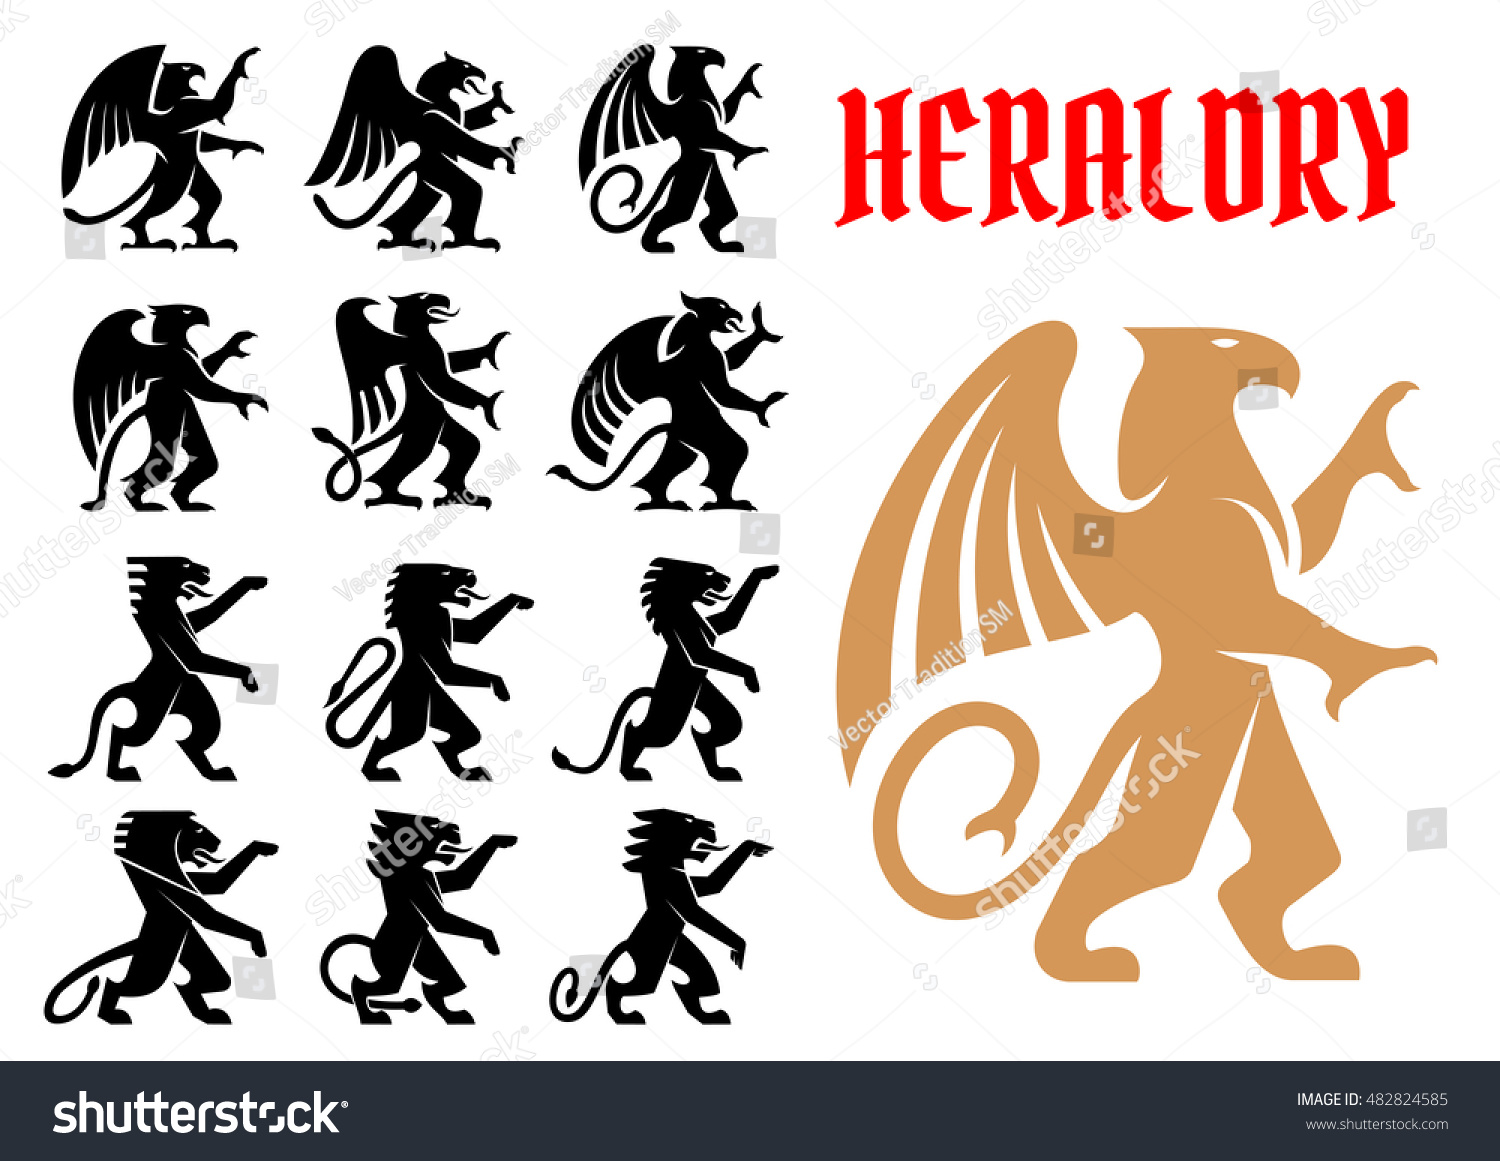 Heraldic mythical animals icons set vector heraldry emblem silhouettes of griffin dragon lion